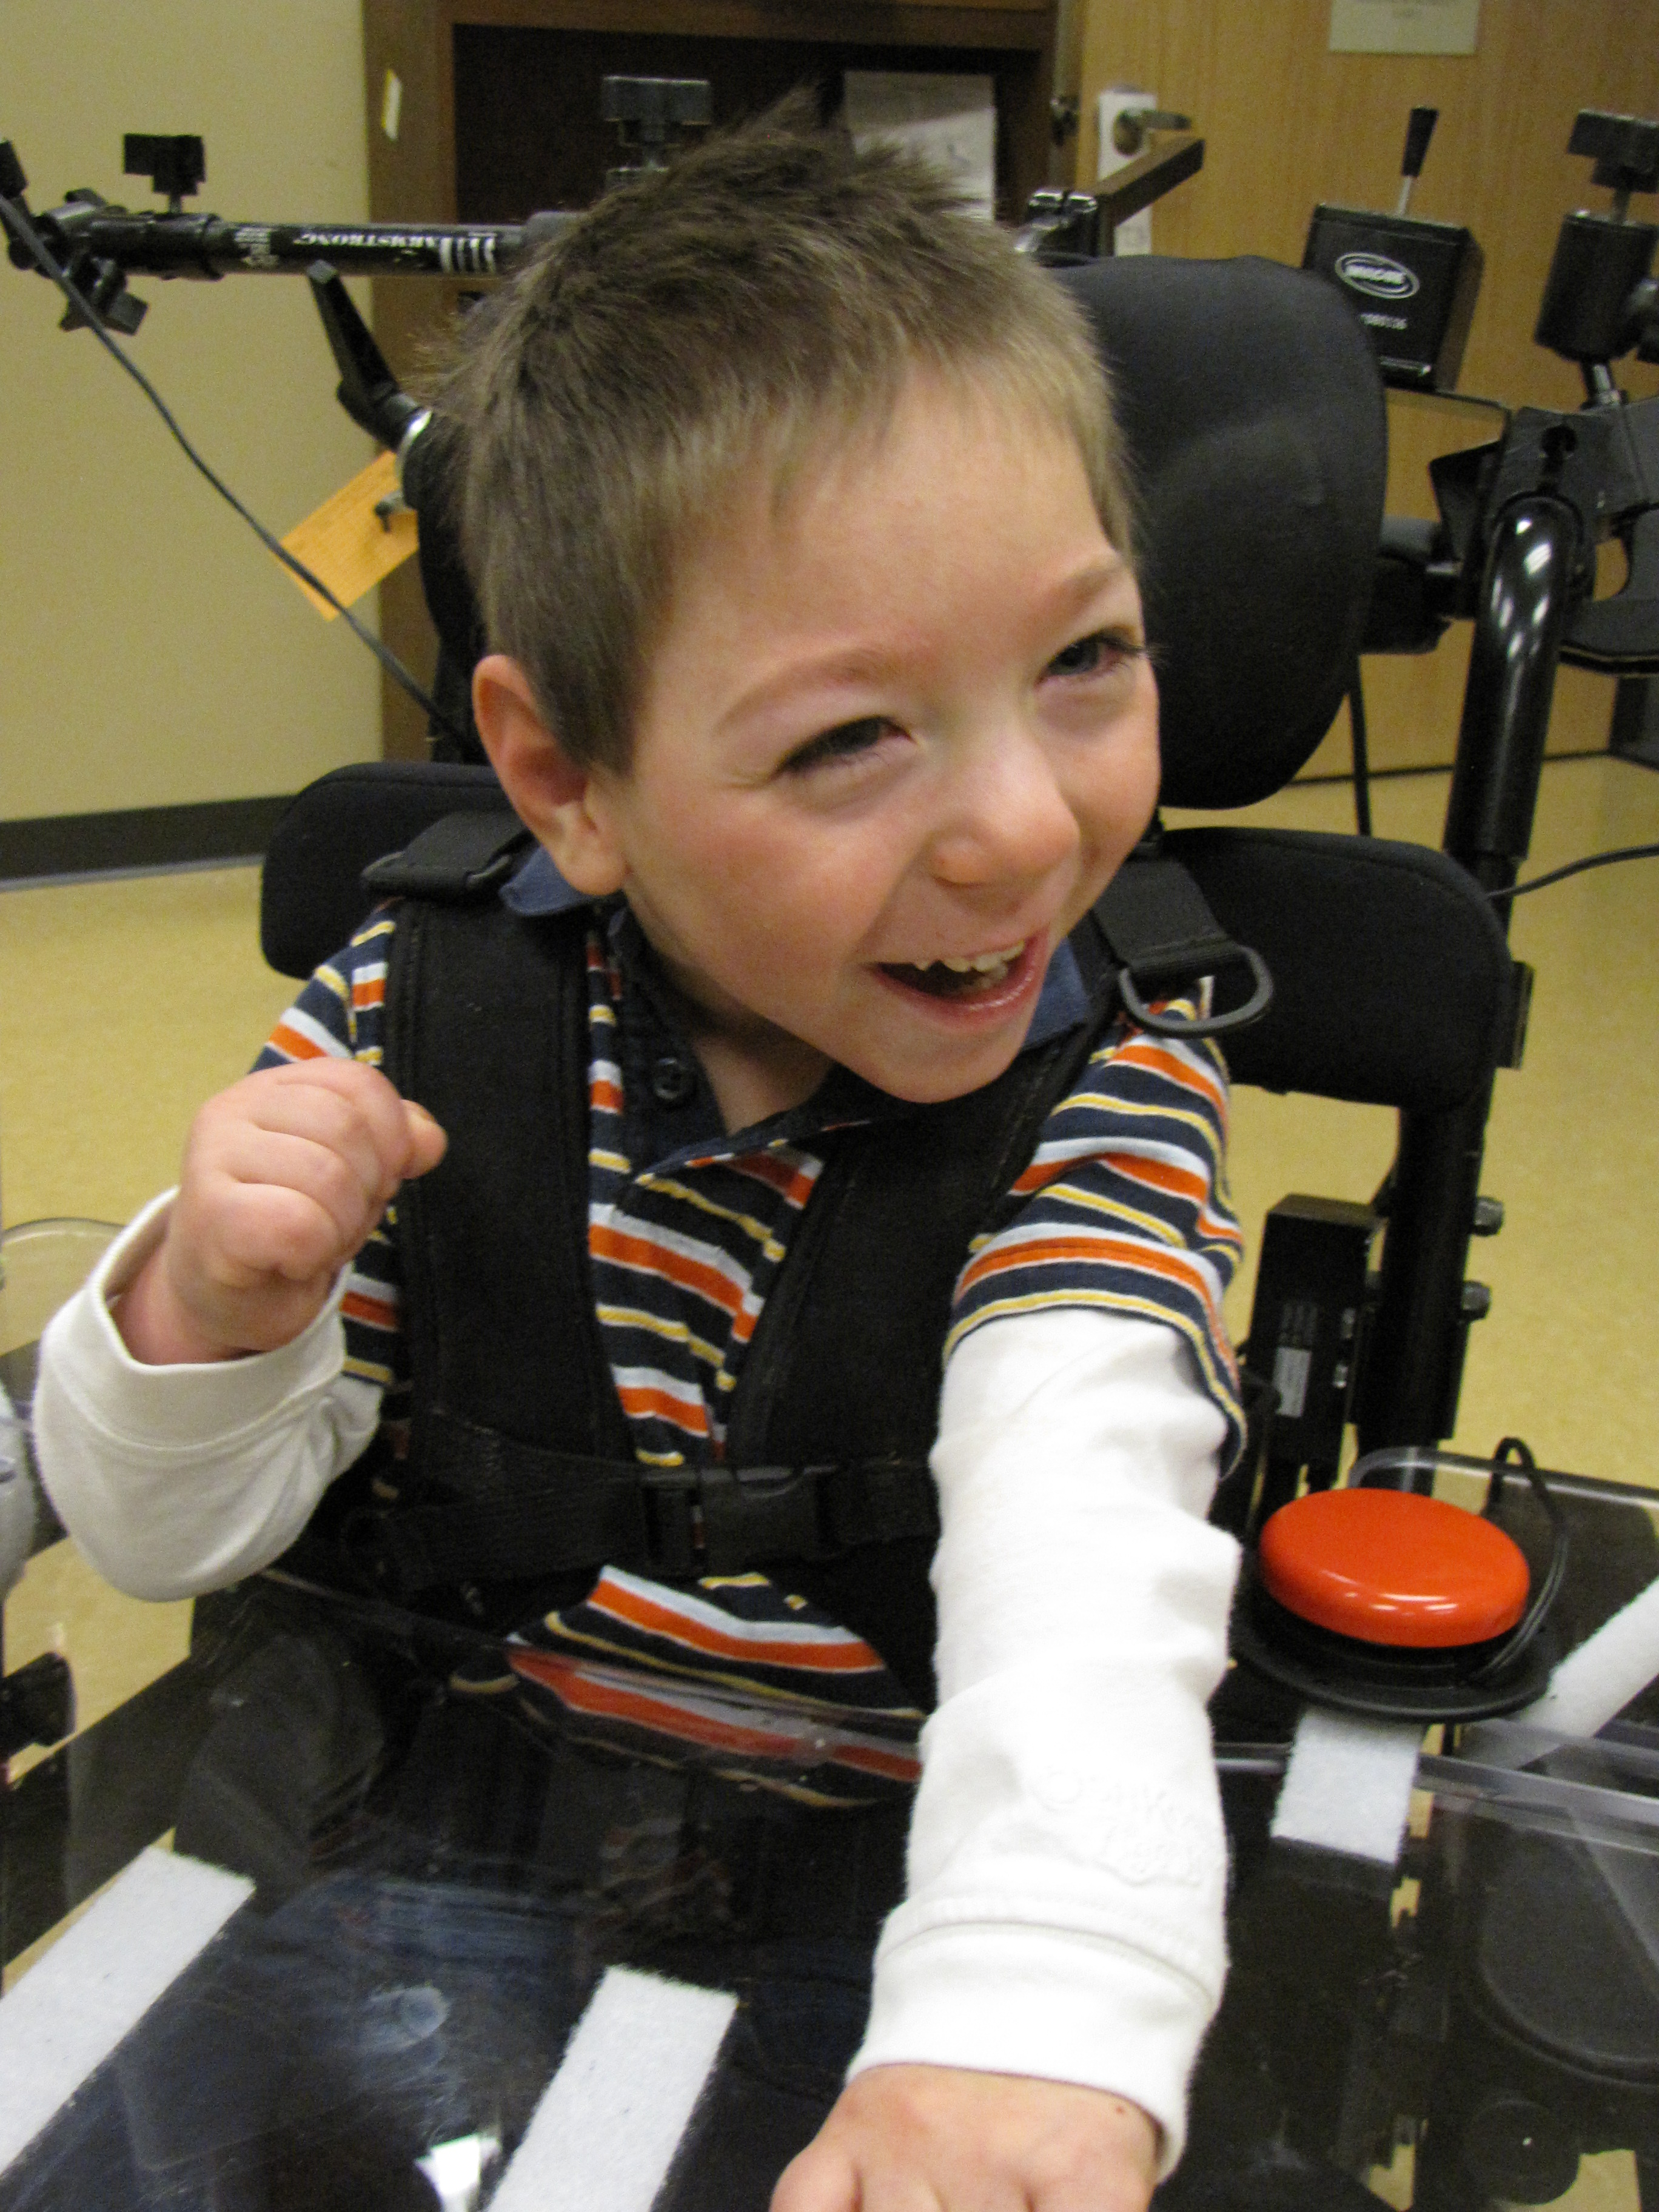 A child with cerebral palsy smiles while seated in his wheelchair. A tray and jelly bean switch are mounted to the chair.